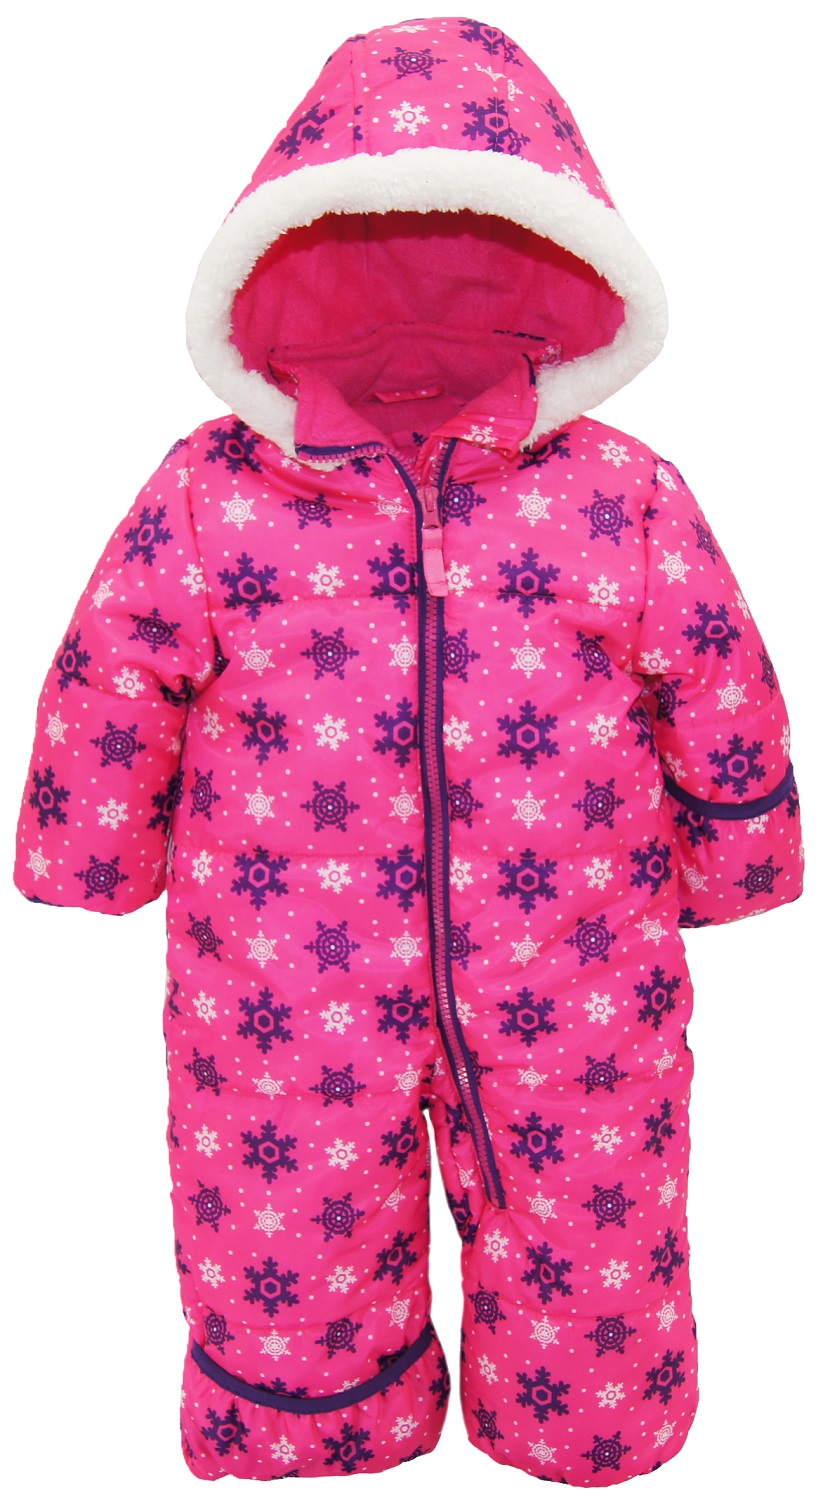 quilted suit platinum ski ip little jacket walmart com bib snowsuit pink girls snowboard